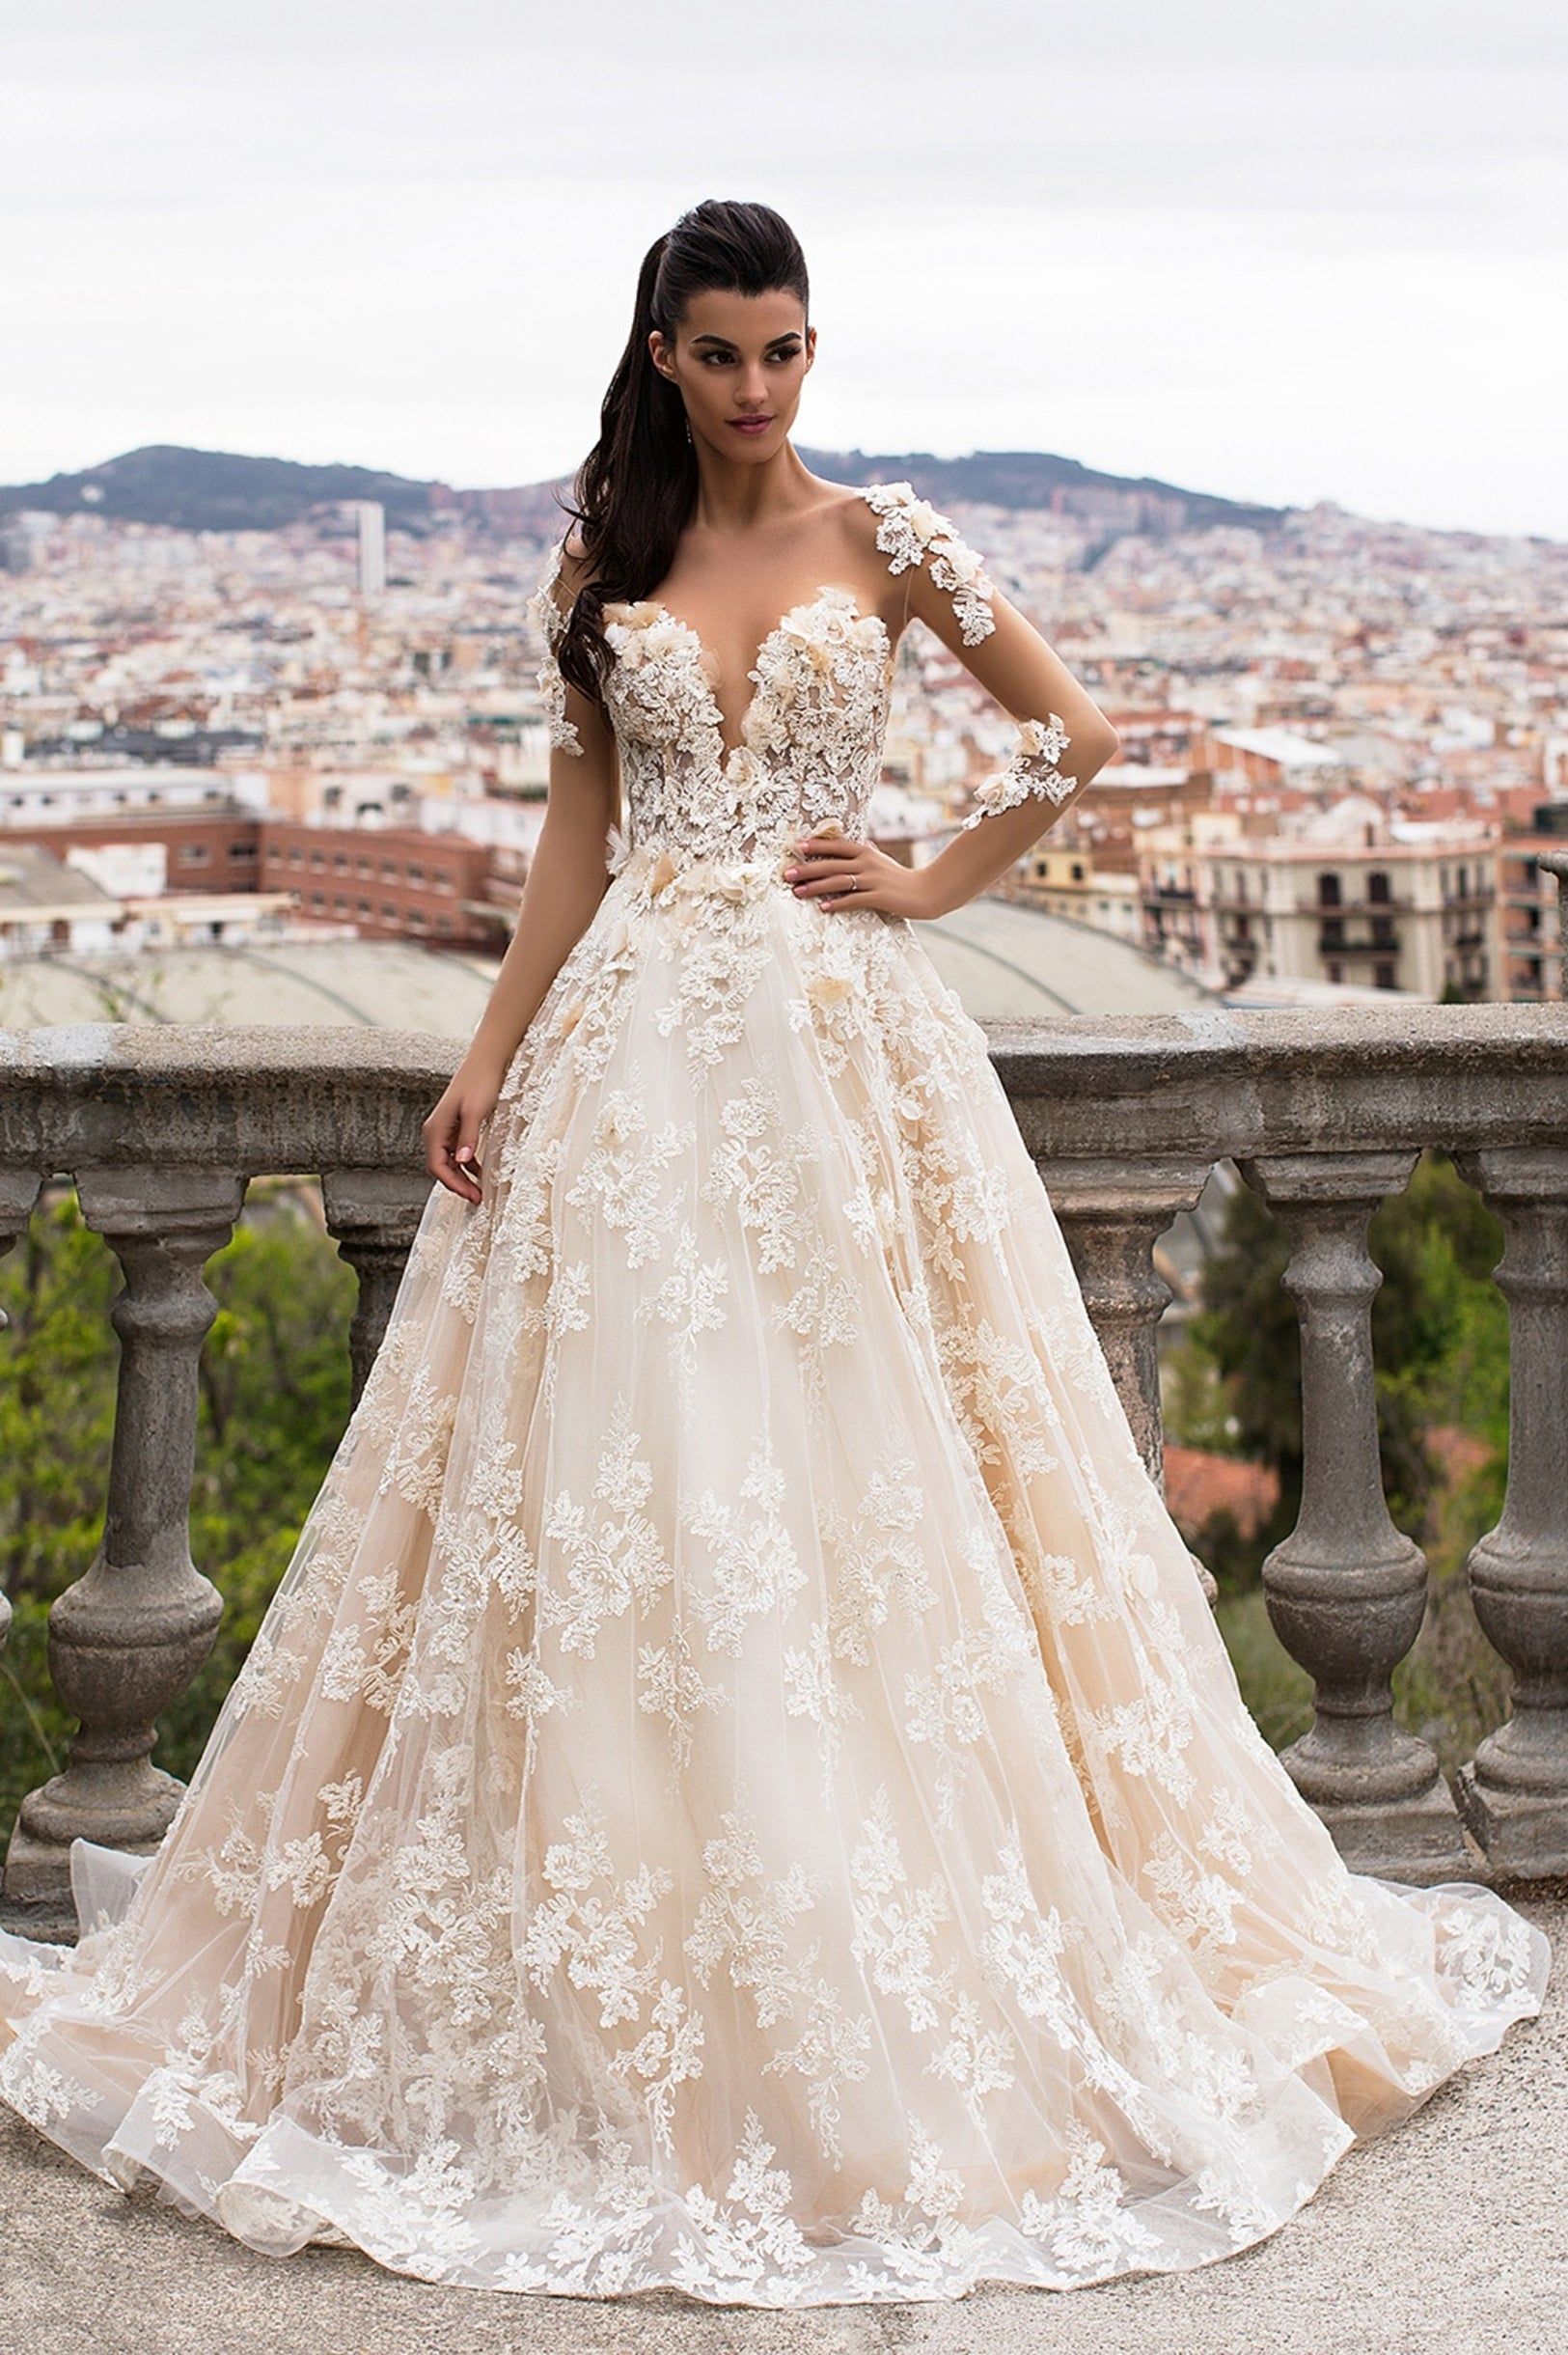 Karen A Line Bridal Gown - The Lovely Find